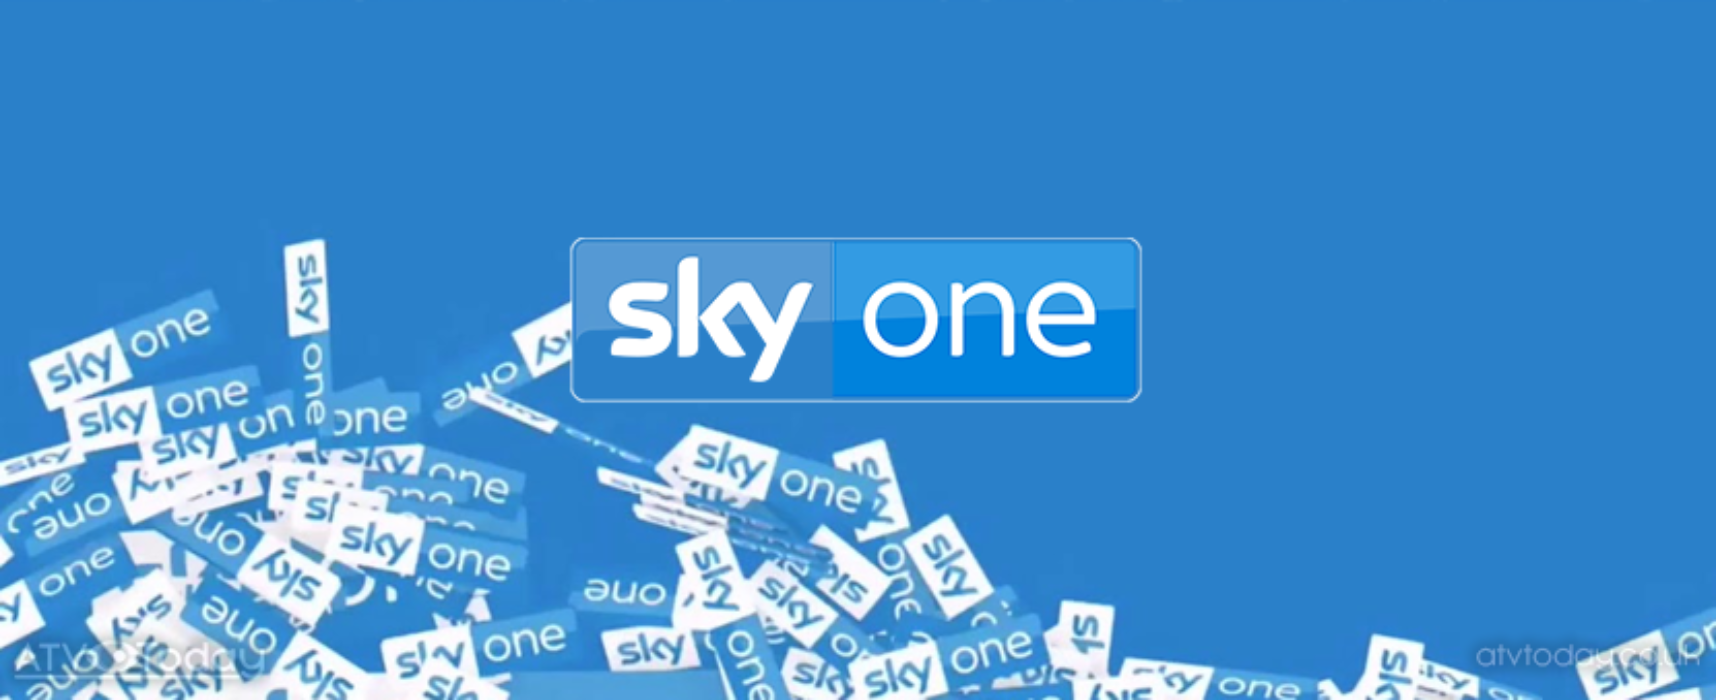 There's Something About Movies to return to Sky One